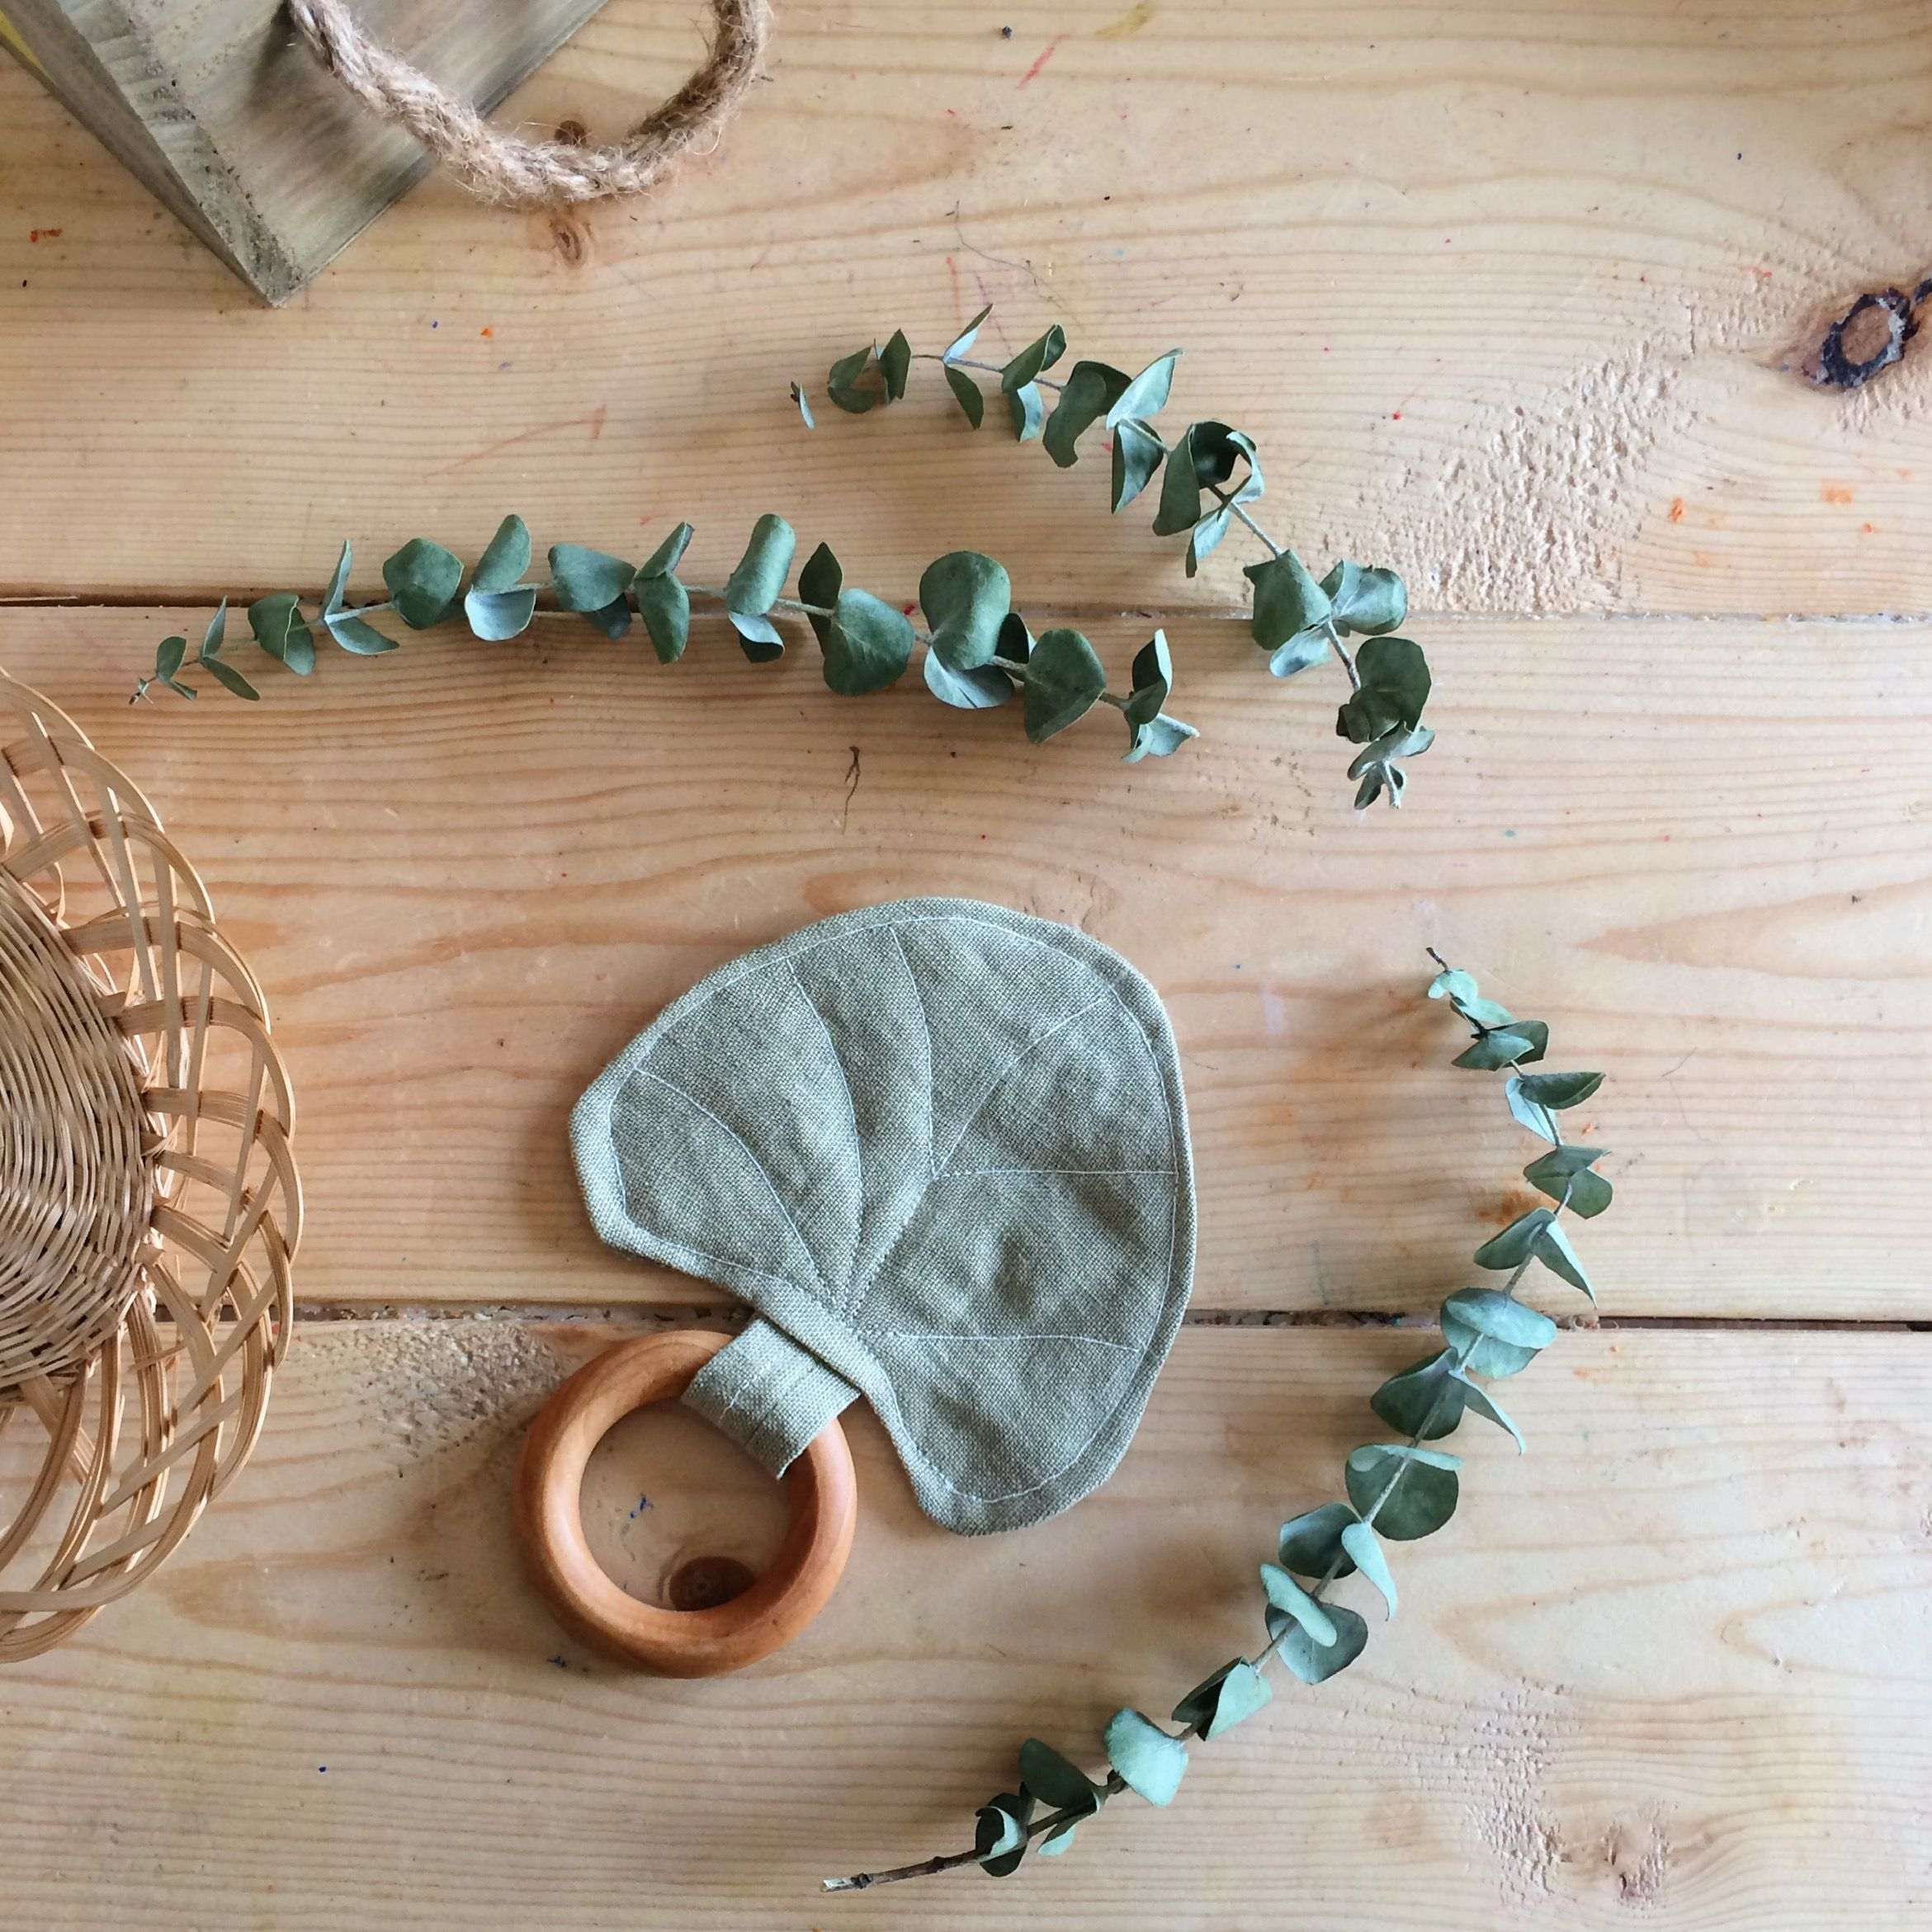 e57a42aa722 Enjoy this beautiful and soft eucalyptus leaf as a gorgeous accessory and a  beloved heirloom toy or lovey.